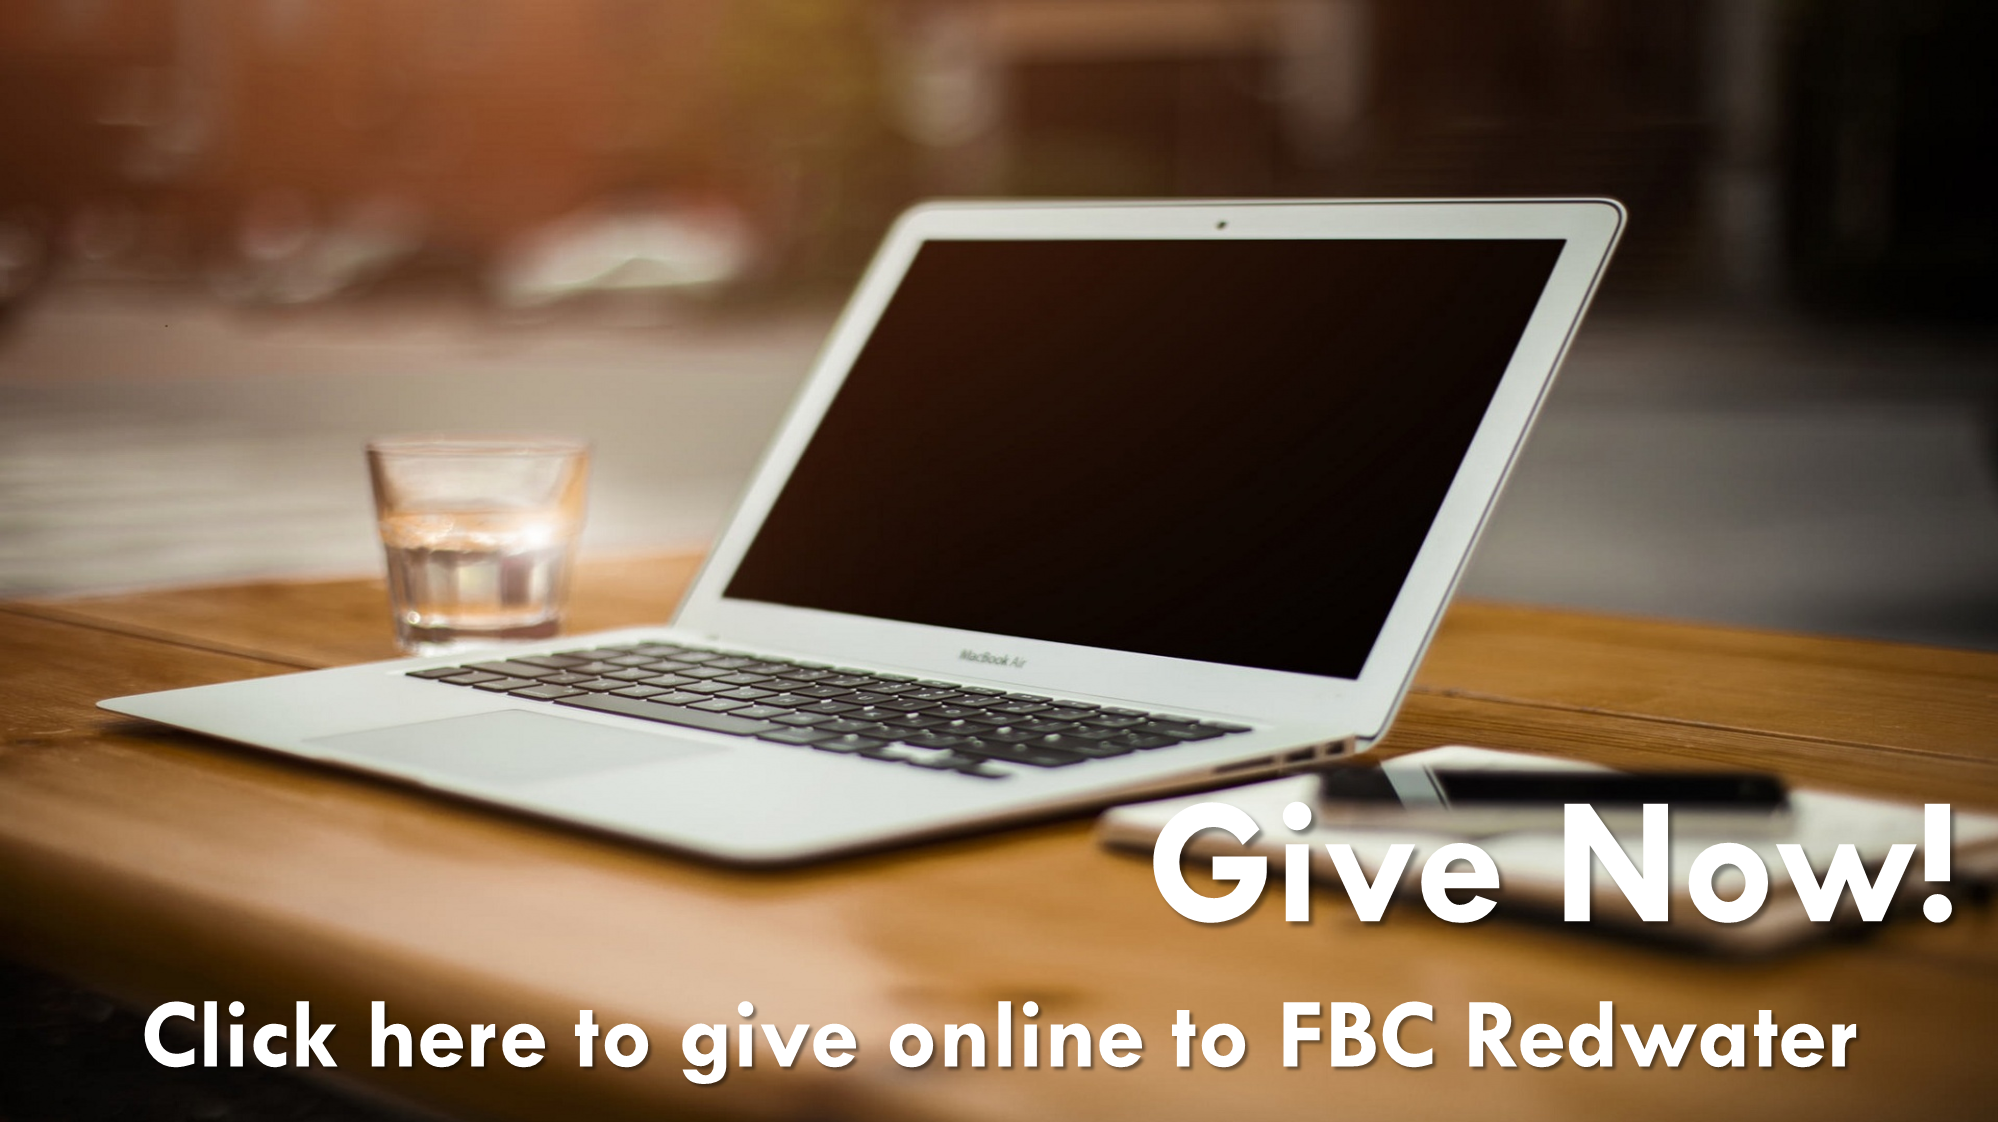 Click here to give online to FBC Redwater